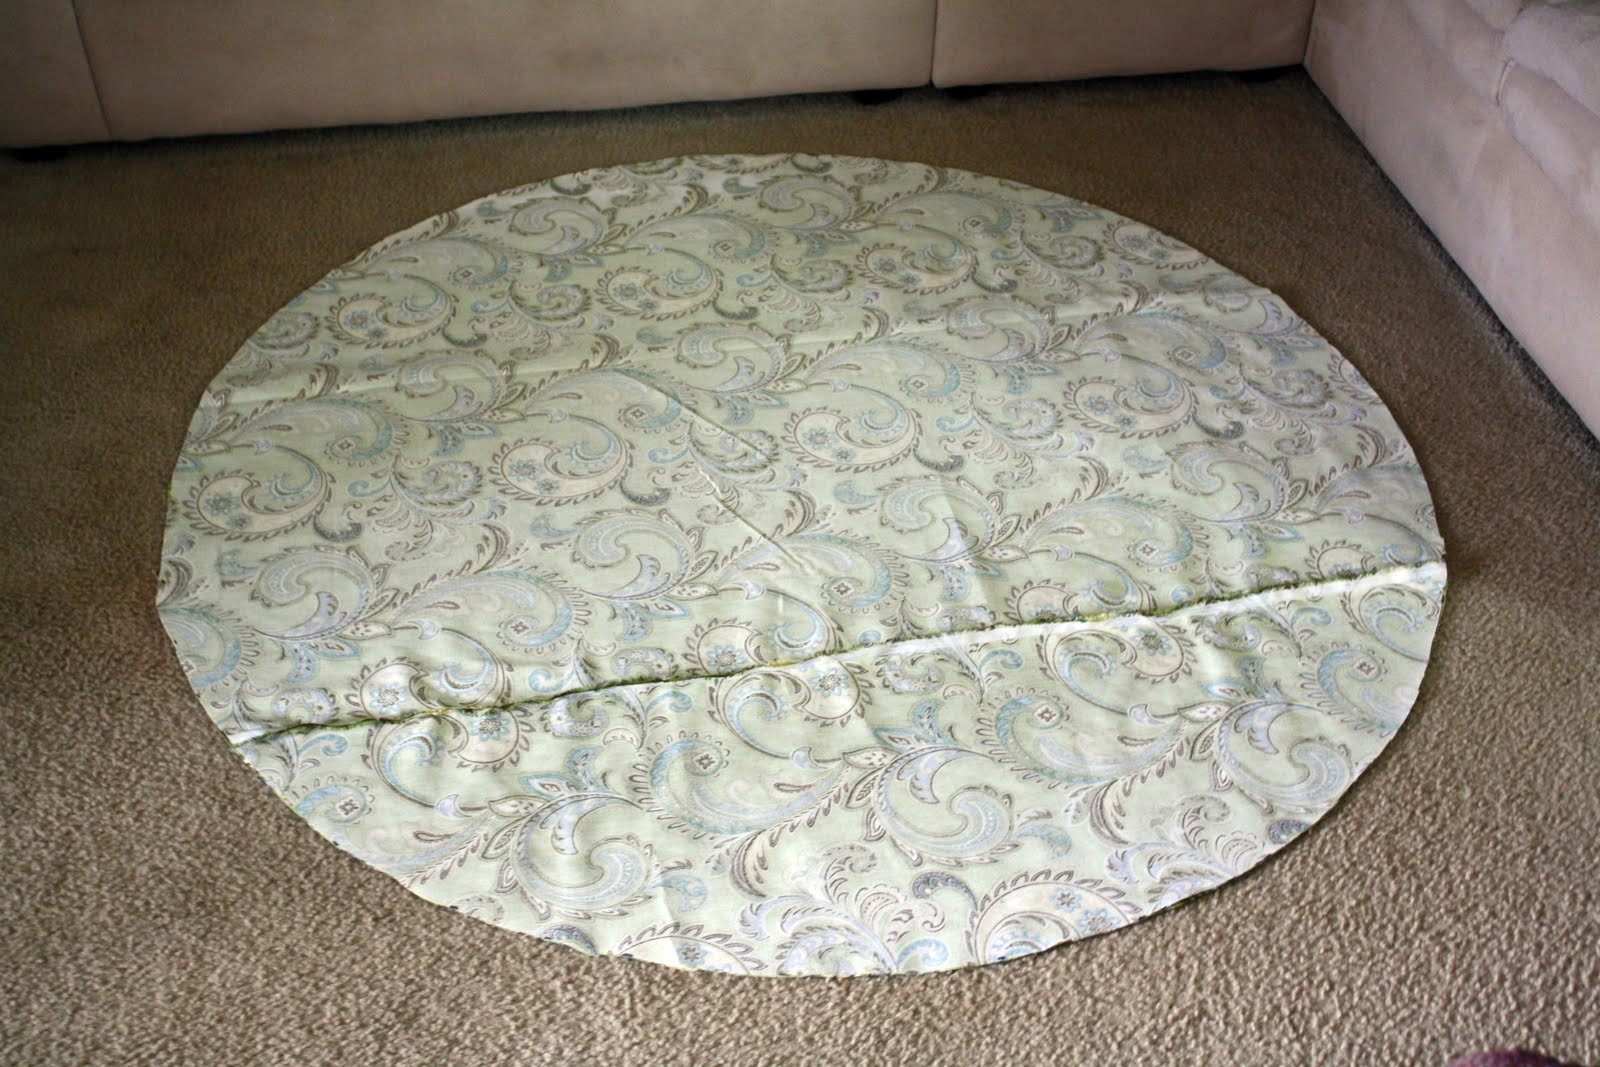 Papasan8 - How You Can Attend Big Round Cushion With Minimal Budget